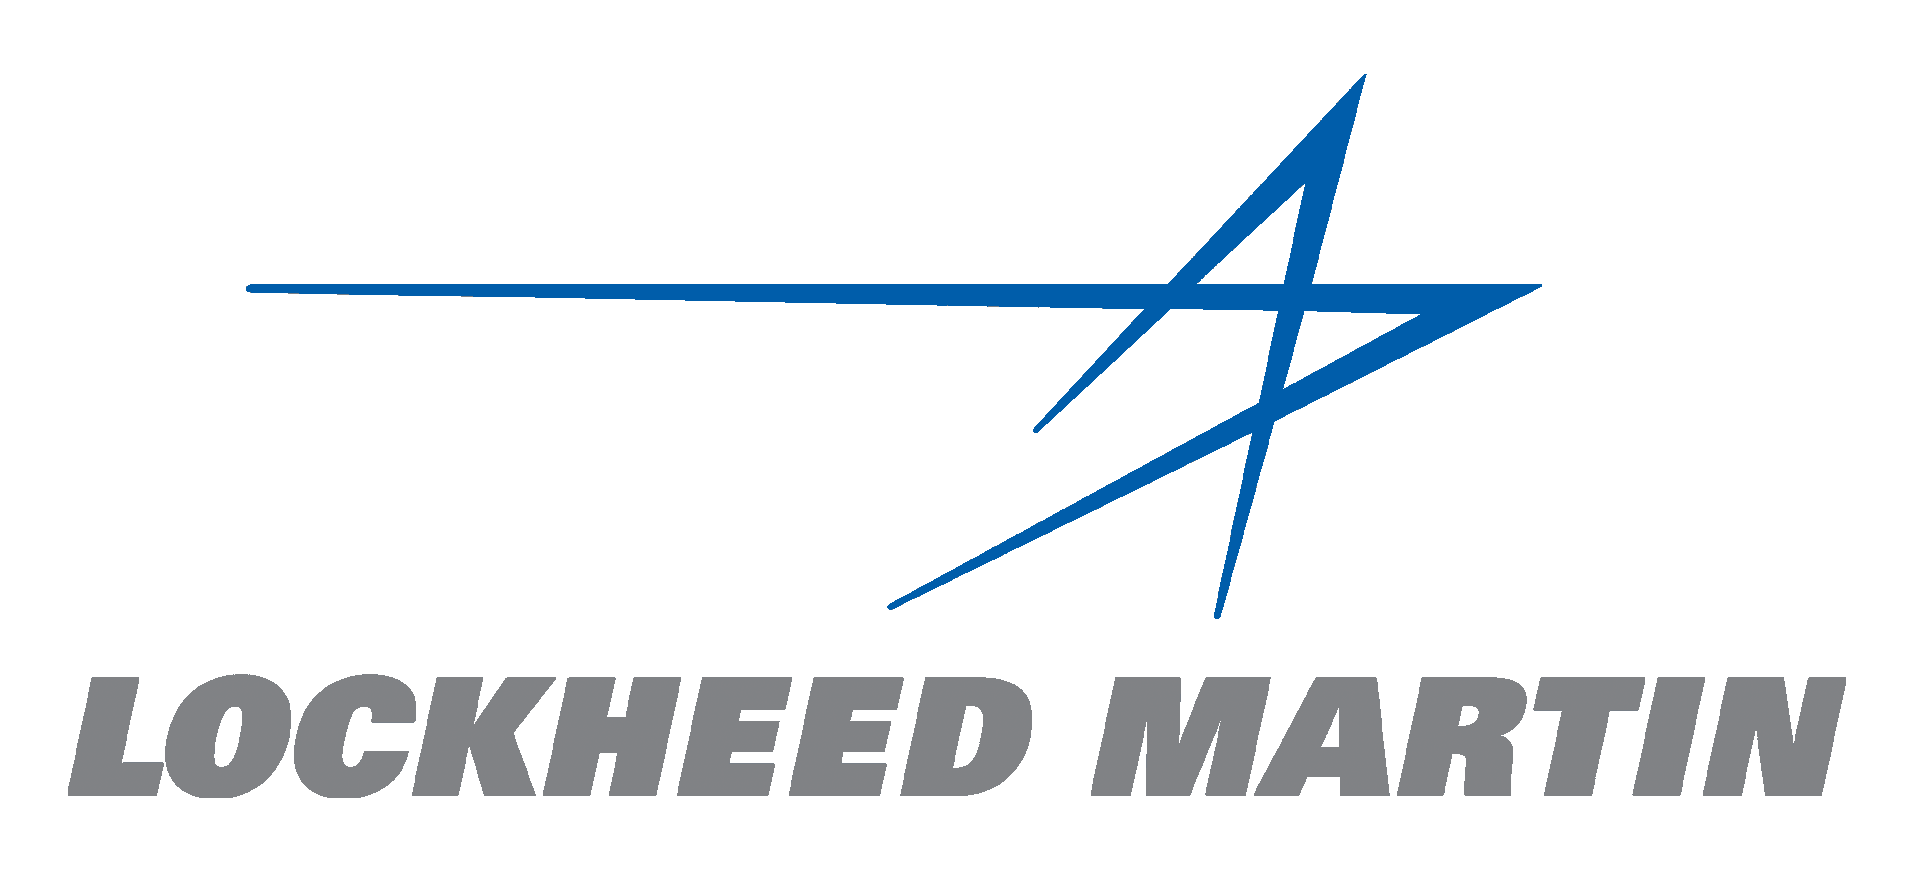 Lockheed Martin is an American global aerospace, defense, security and advanced technology company.